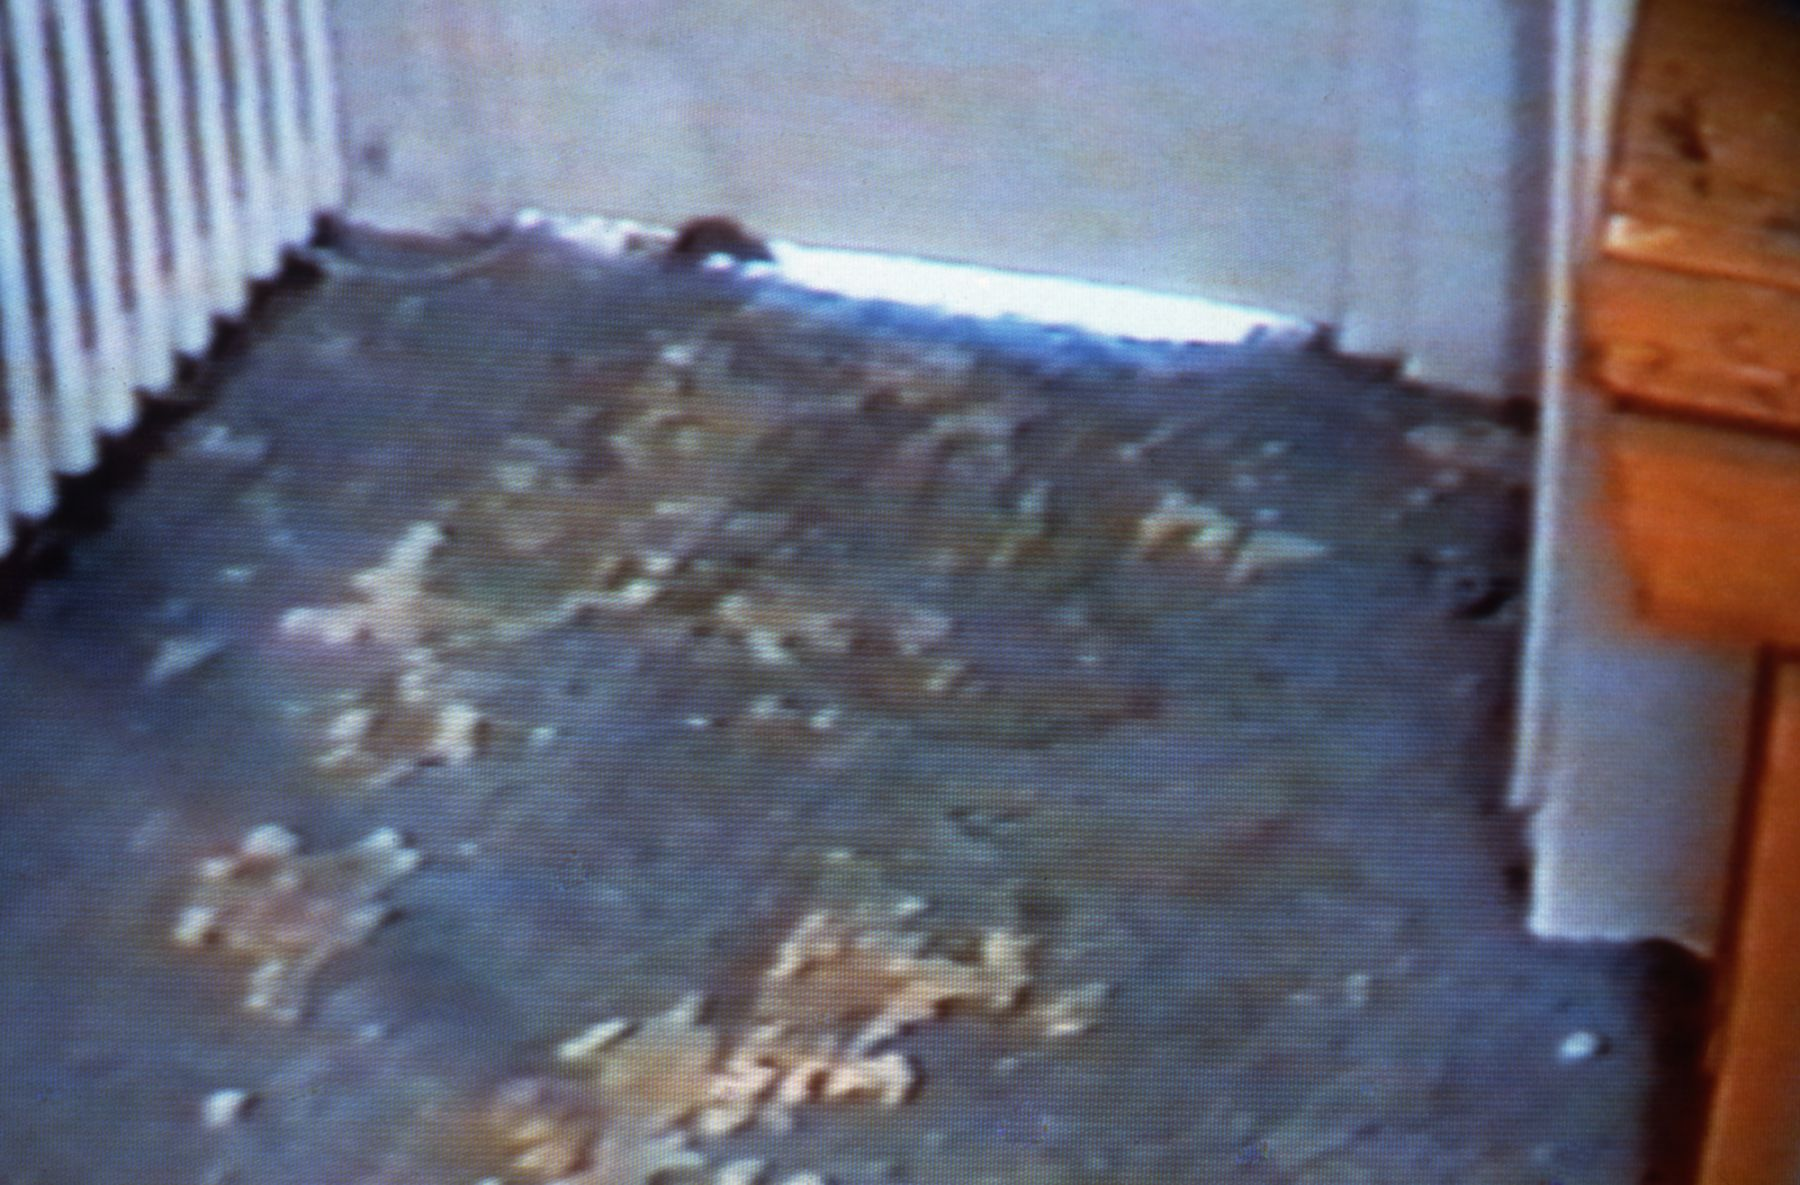 Lucy Gunning Mouse Running Round Kitchen, 1993 (still) VHS video 45:00 min